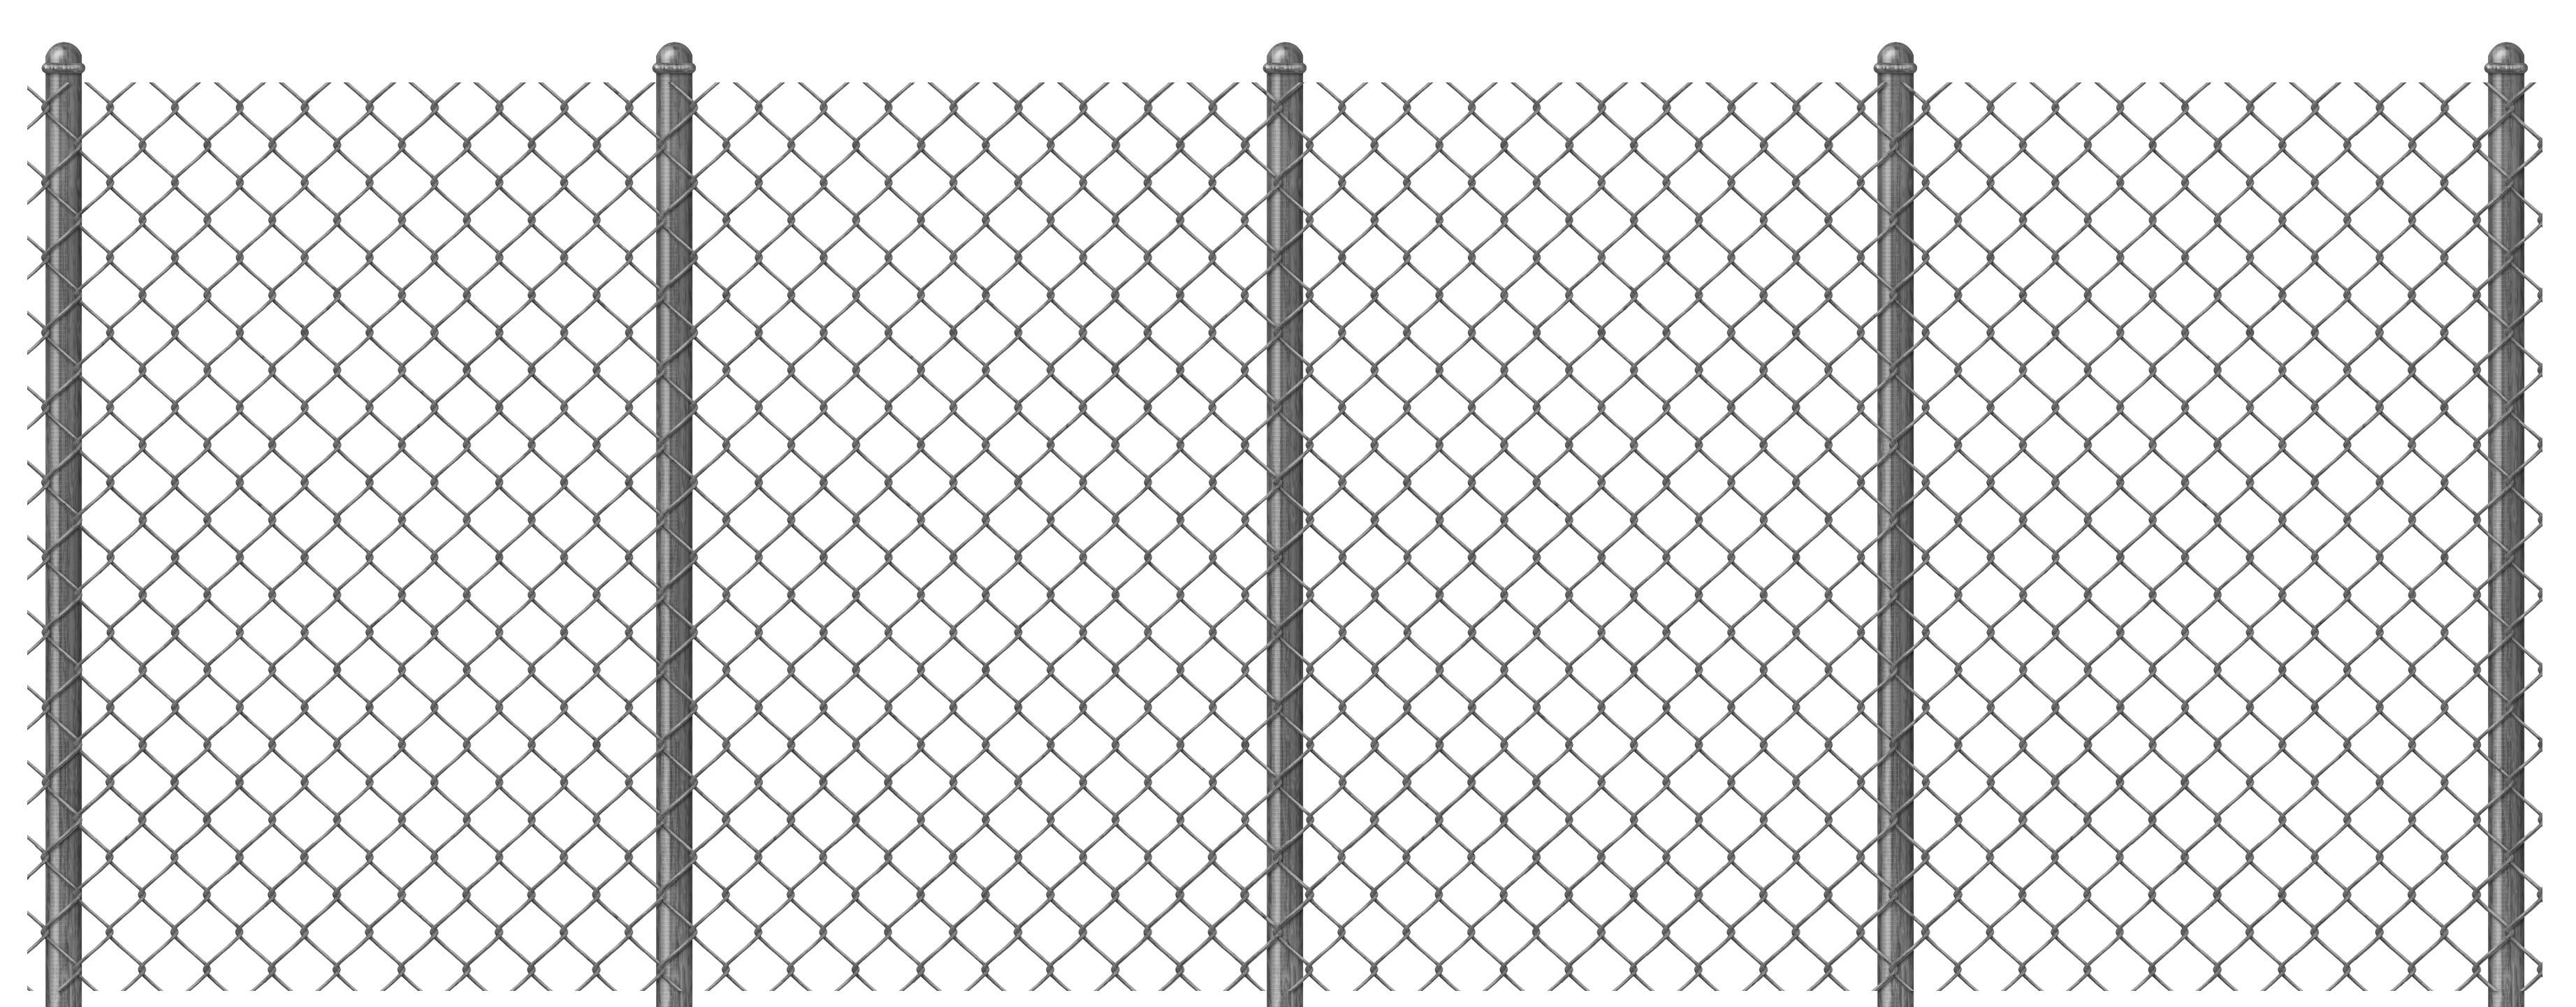 Metal Fence Png - Transparent Chain Link Fence PNG Clipart | Gallery Yopriceville ...